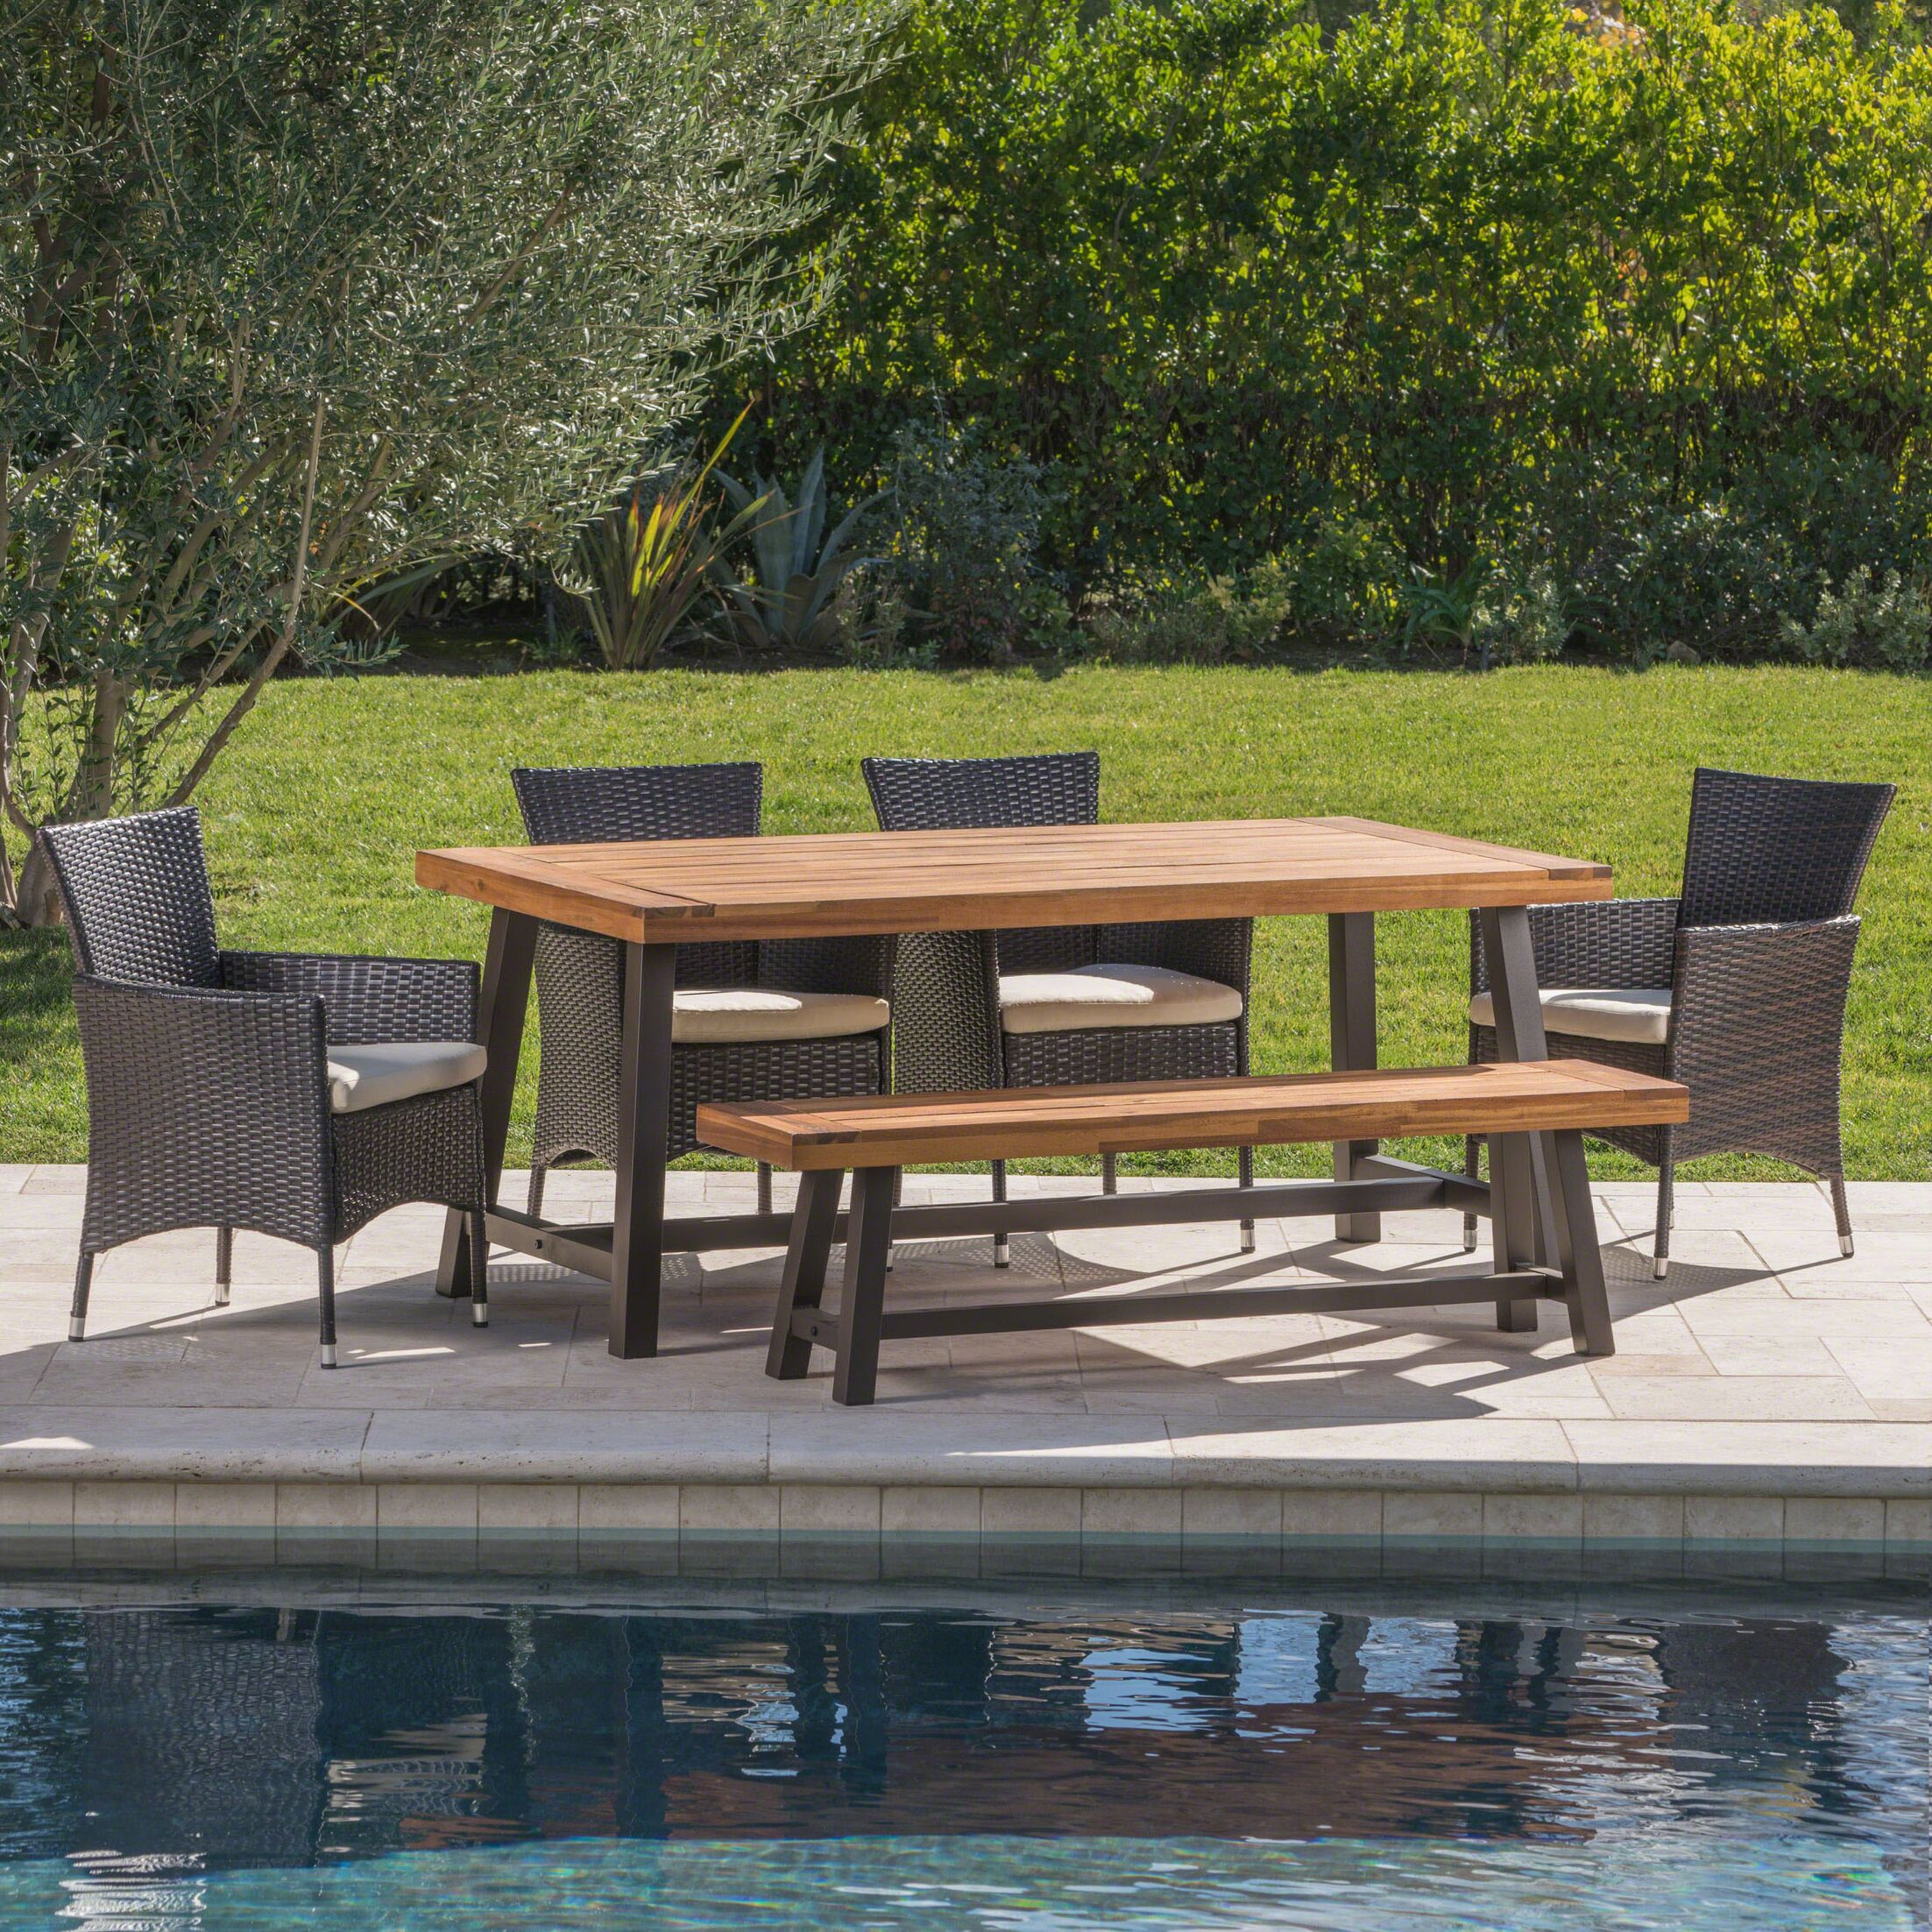 Lebo Outdoor 6 Piece Dining Set with Cushions Color: Brown/Black